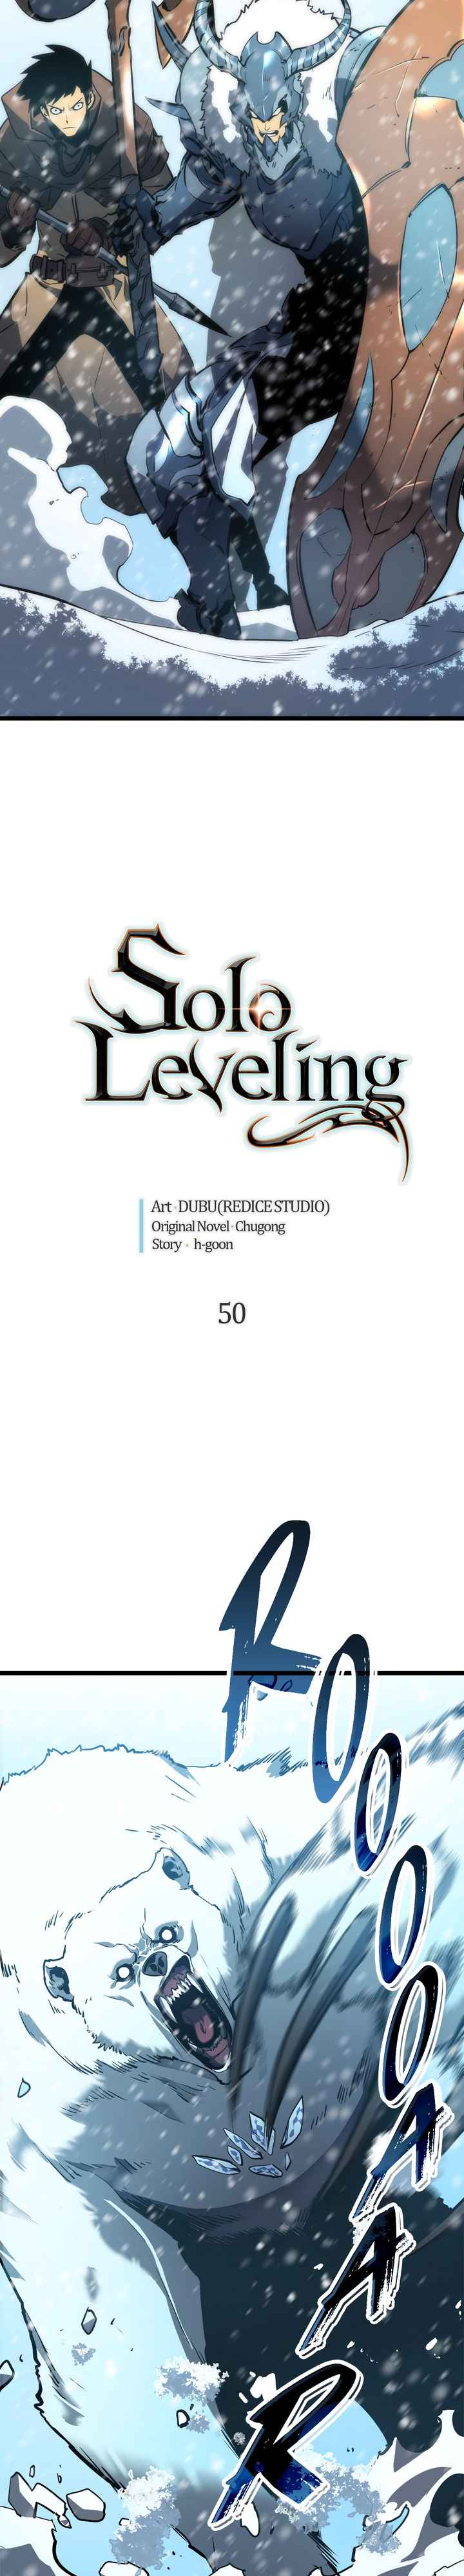 Solo Leveling Chapter 50 Page 2